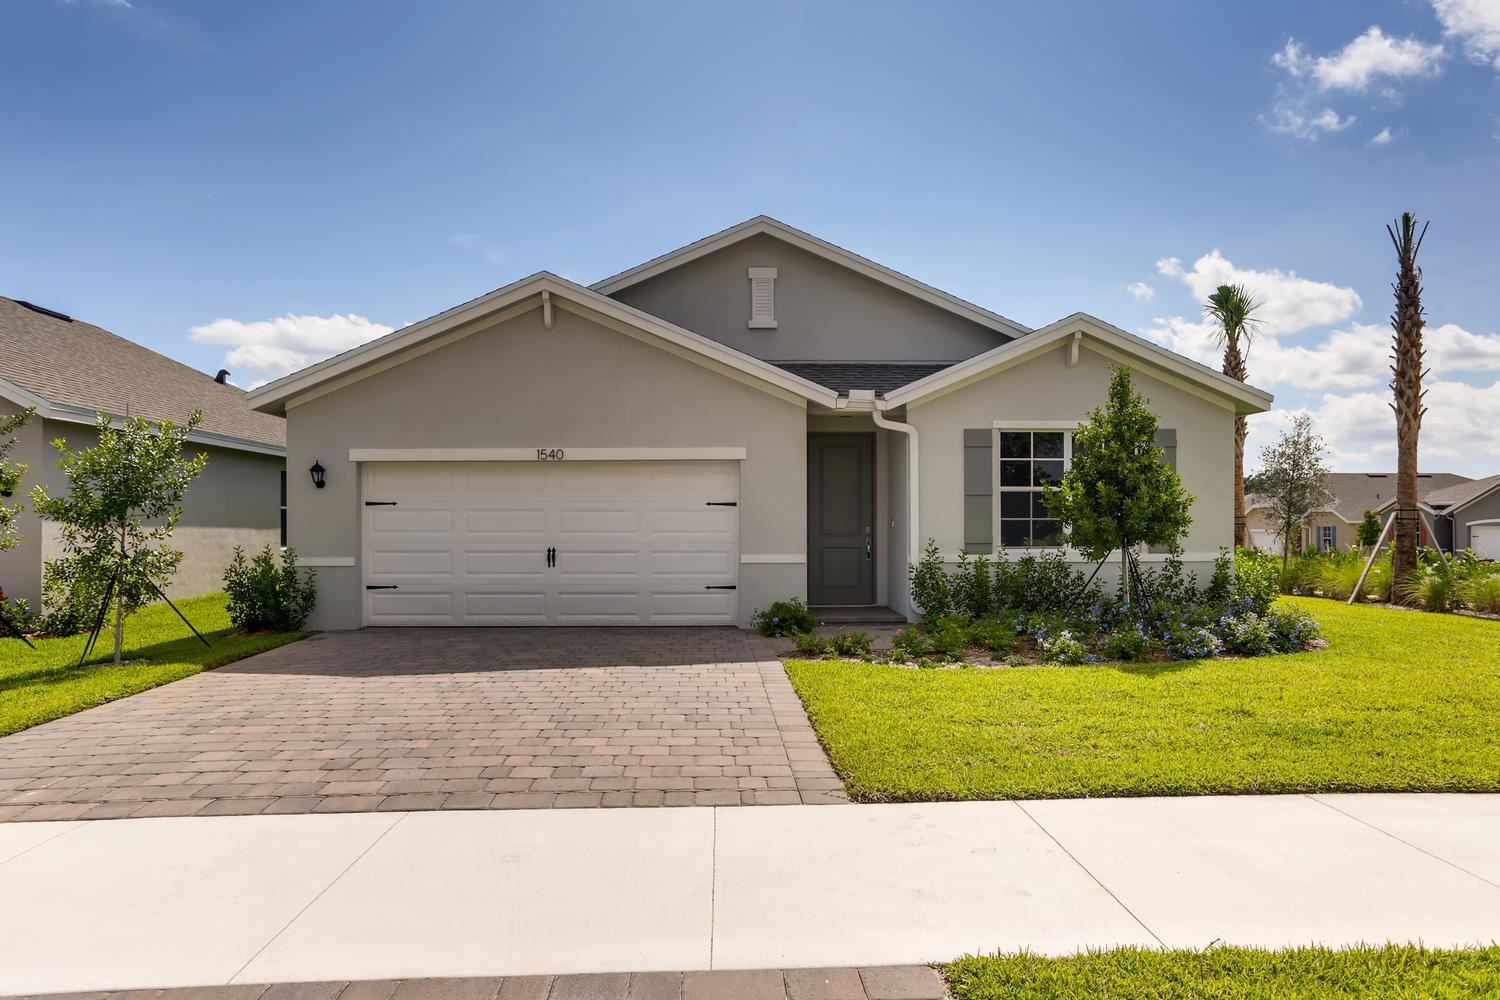 1540 NE Skyhigh Terrace, Jensen Beach, FL 34957 - #: RX-10602059